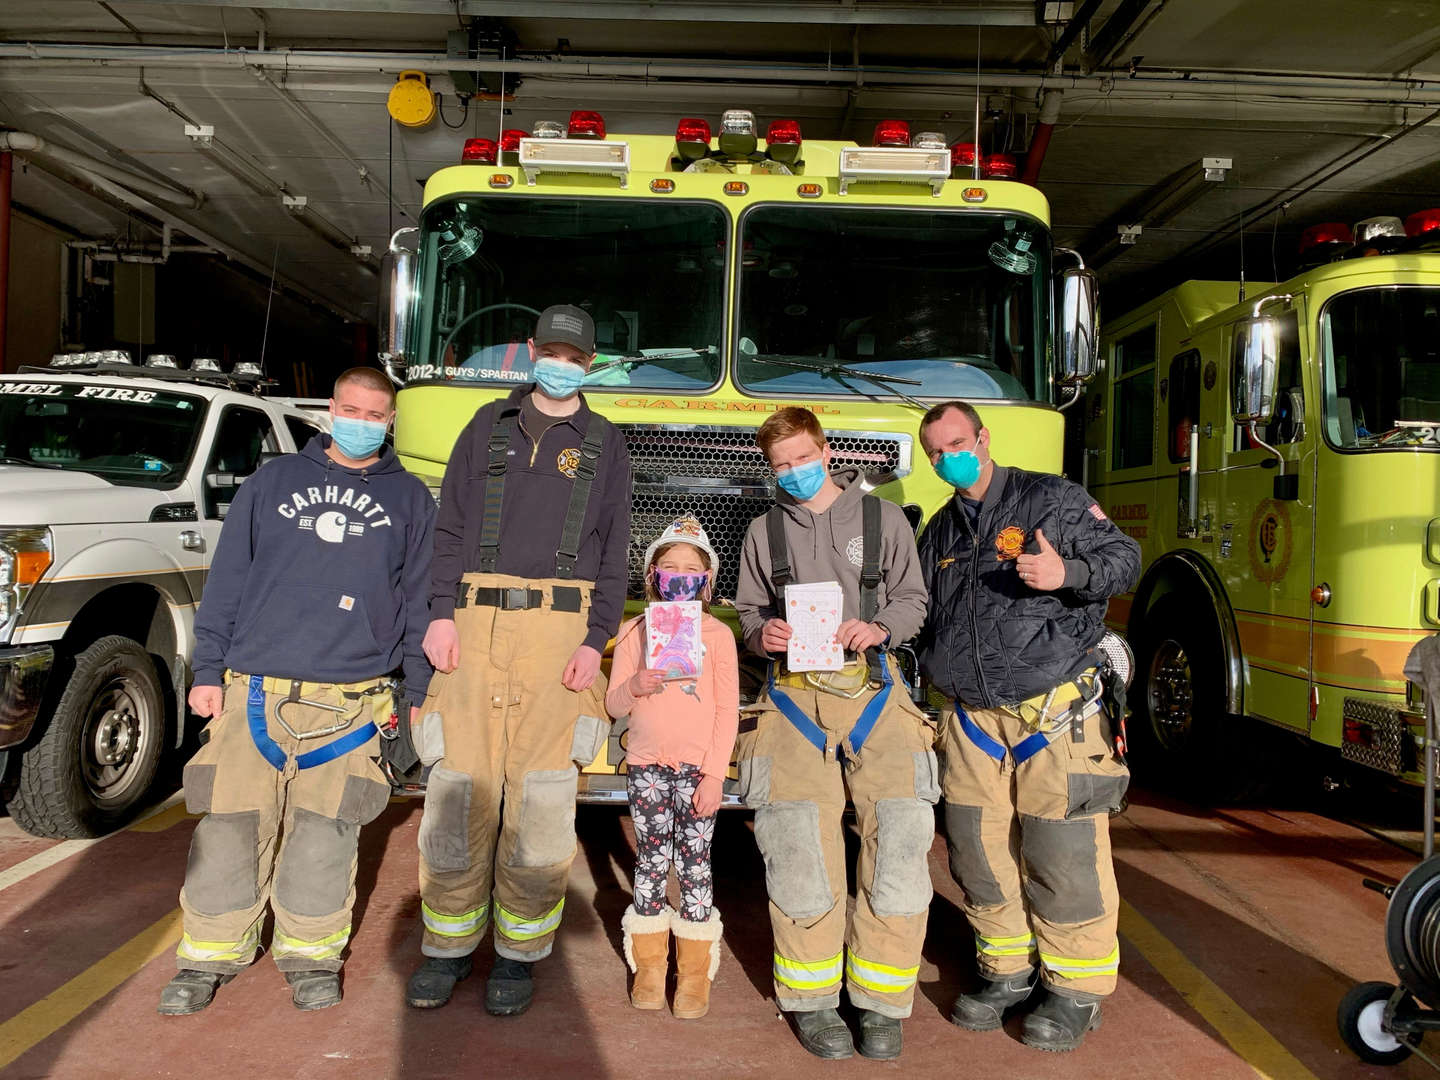 Students stand with firefighters in front of a fire truck